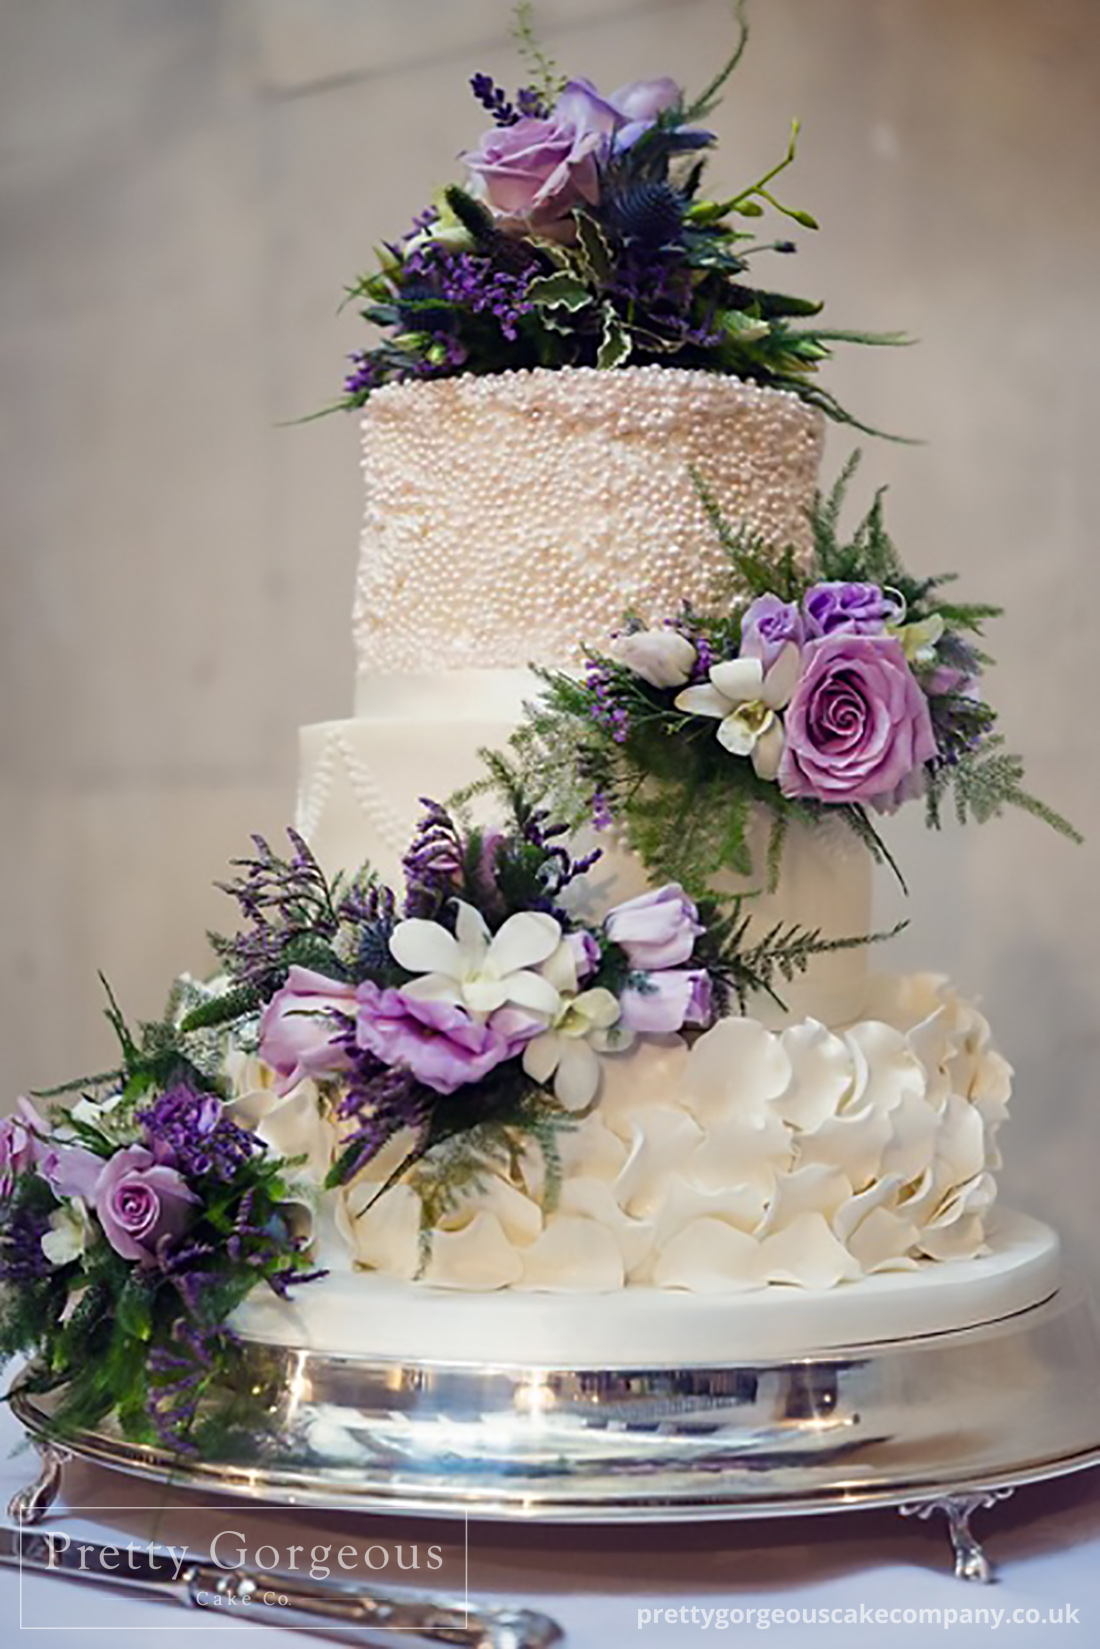 Three tier cake, detailing, wedding cake